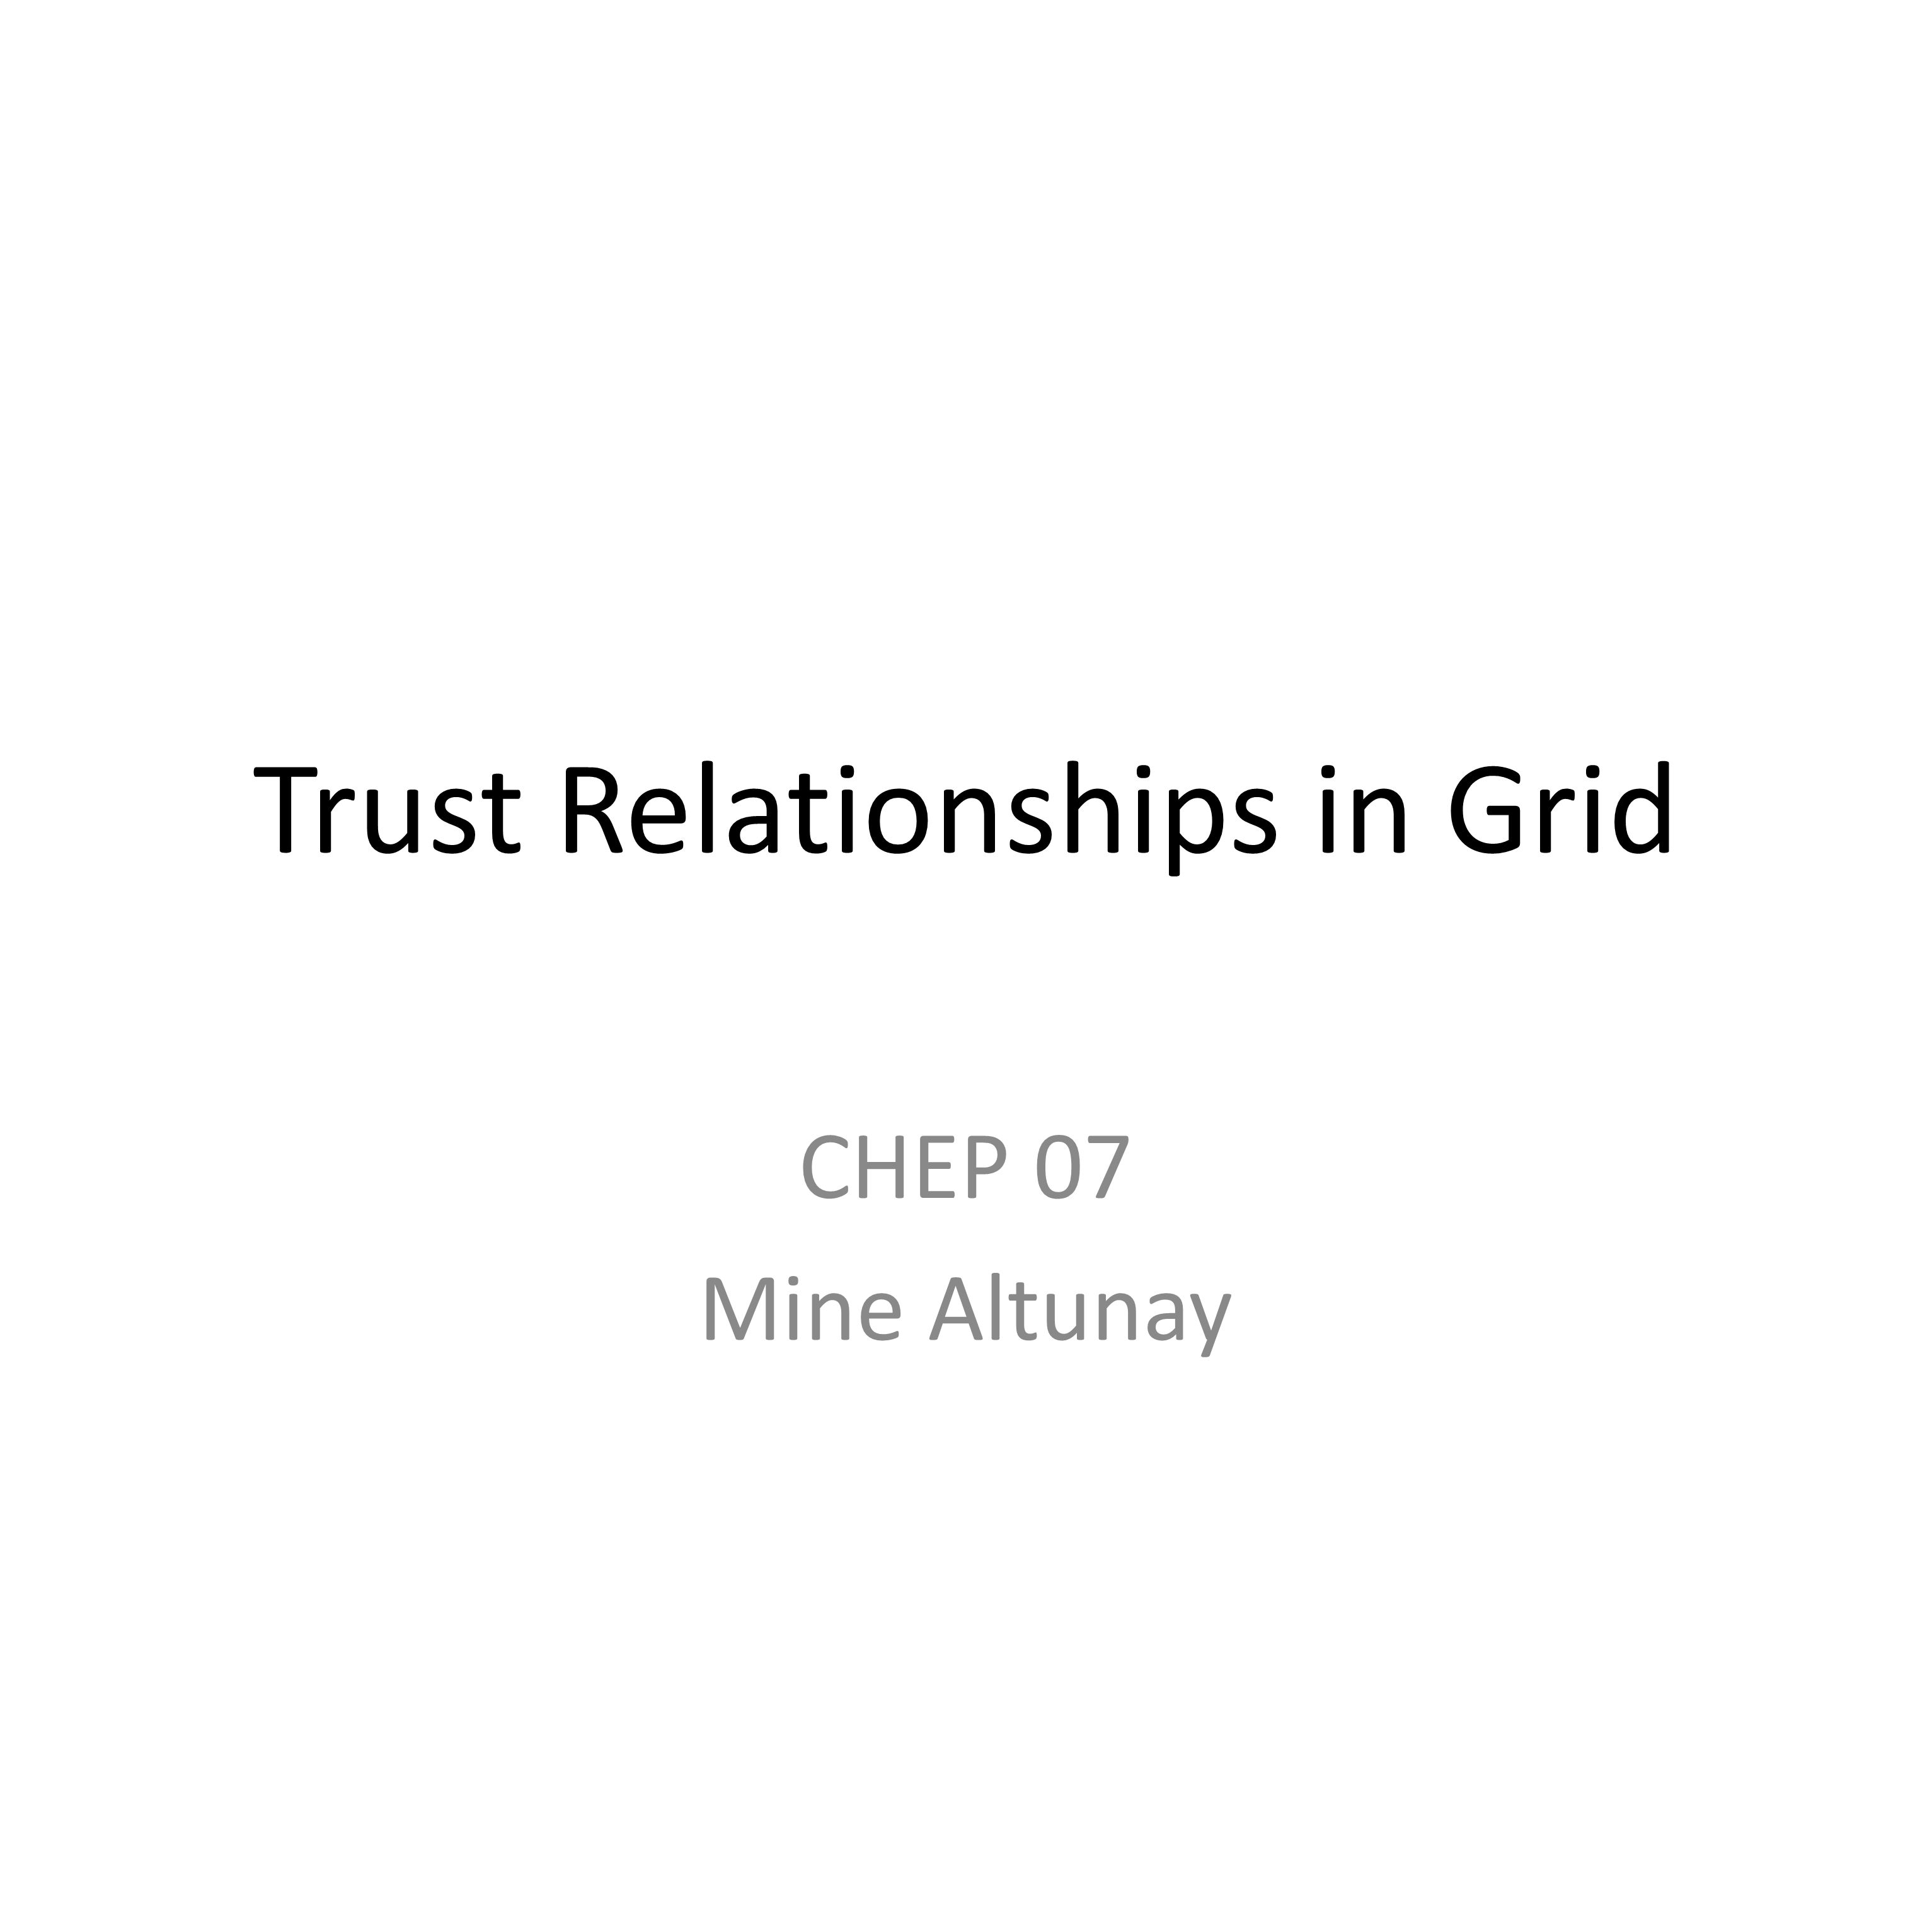 Trust Relationships In Grid Chep 07 Mine Altunay Ppt Download